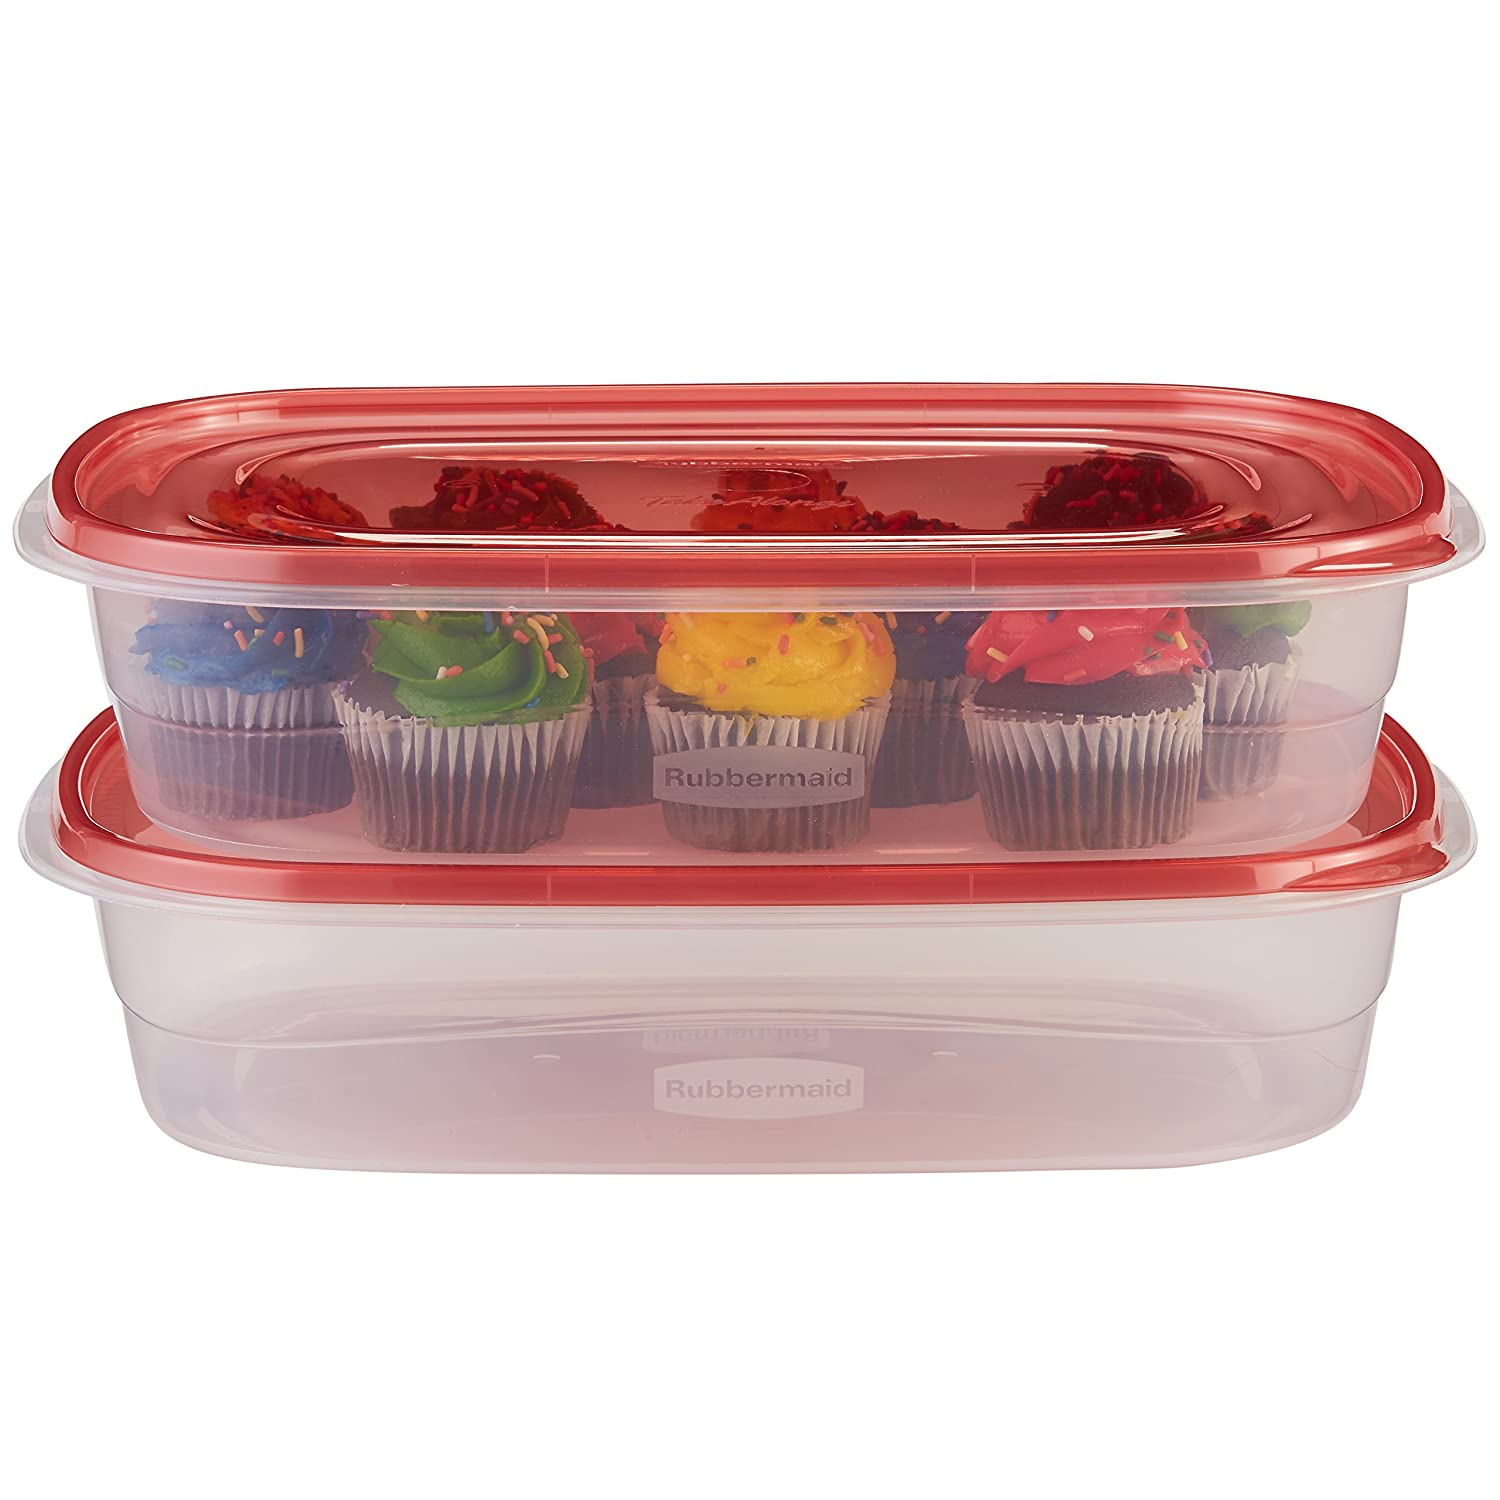 Rubbermaid TakeAlongs Food Storage Container, Large Rectangles, 1 Gal, 2 Pack, Red Rubbermaid Consumer 1953766